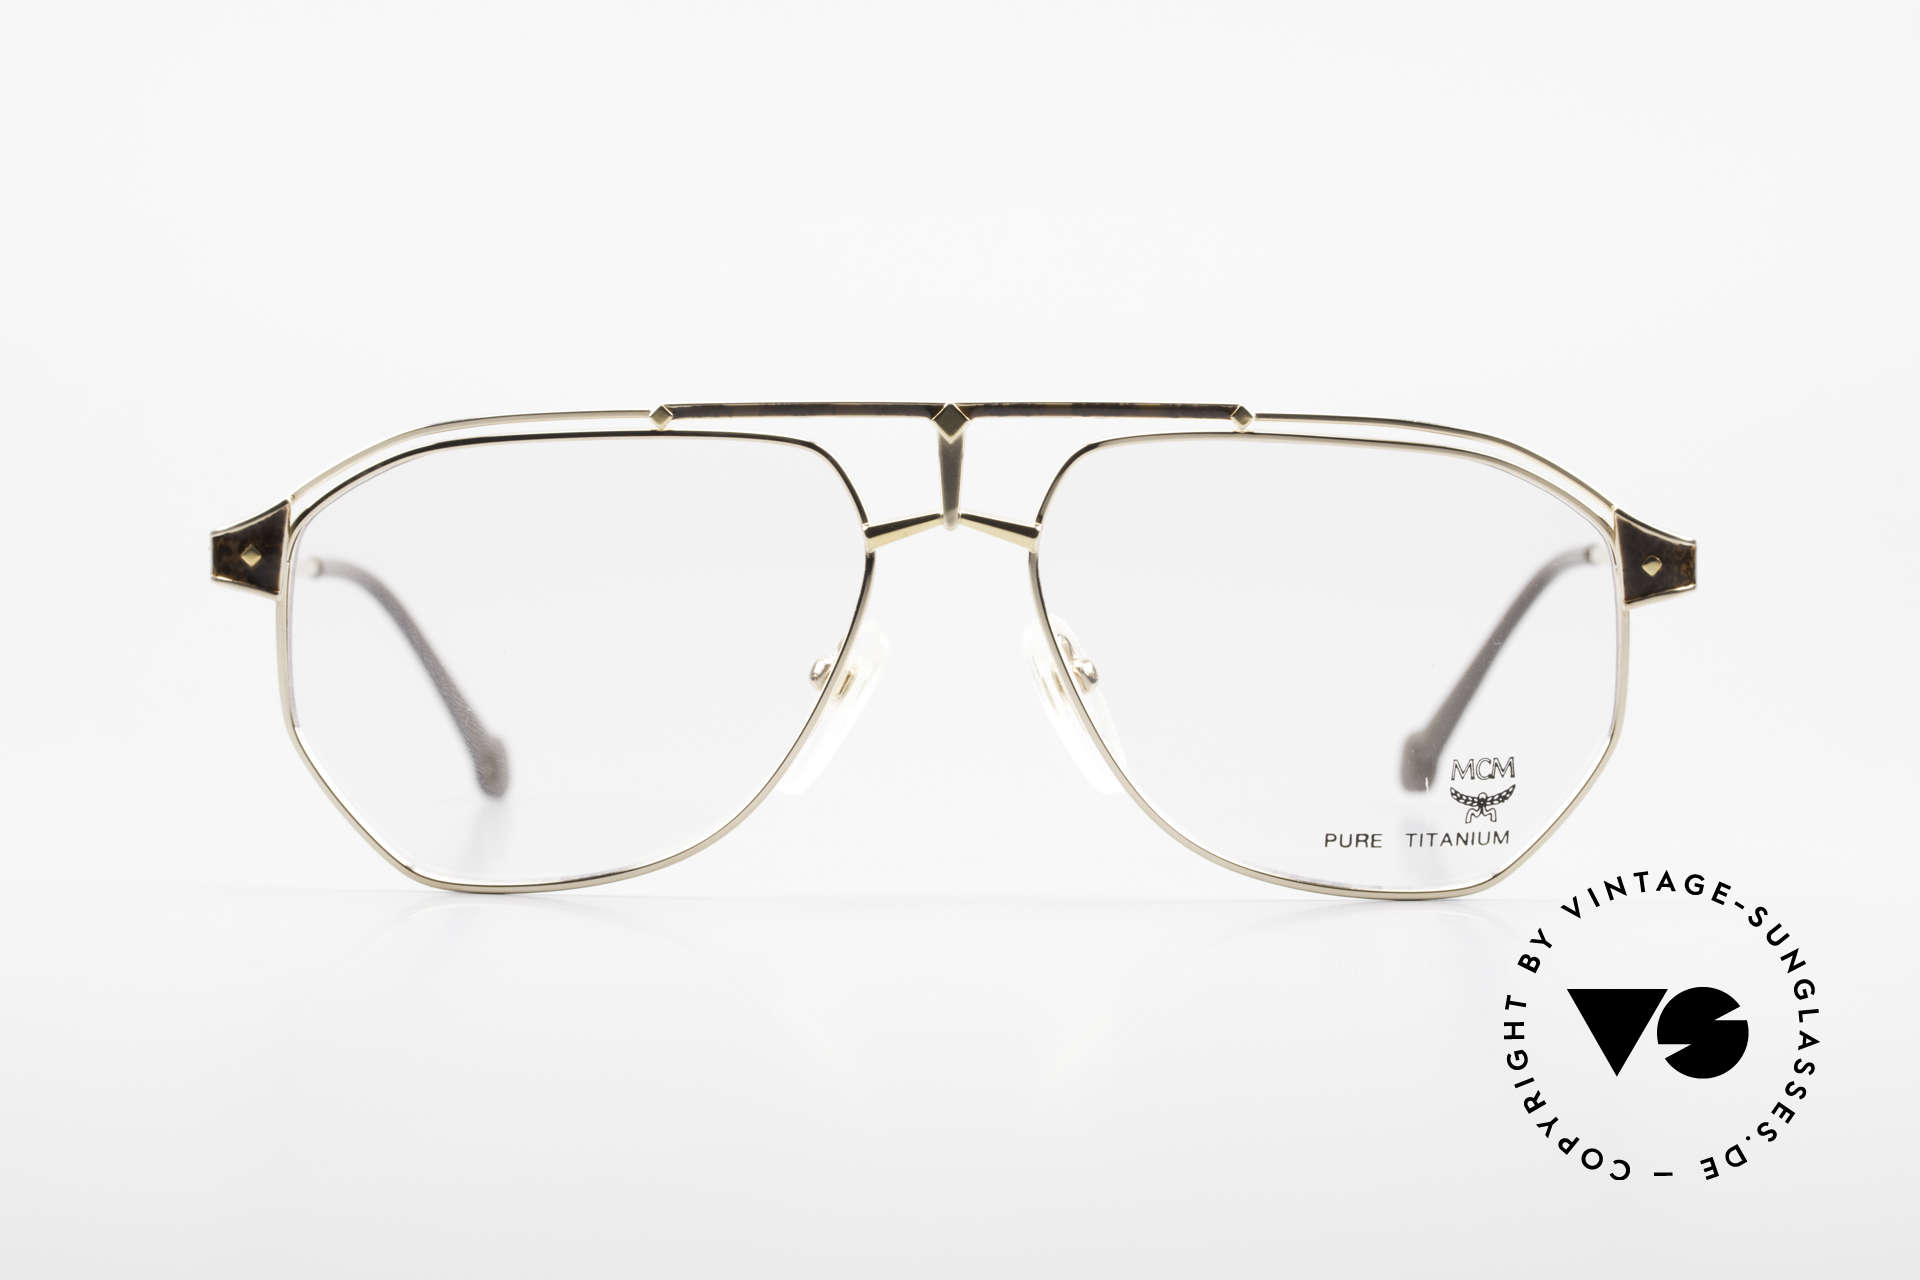 MCM München 6 XL 90's Luxury Vintage Glasses, modified aviator design (150mm frame width) = XXL, Made for Men